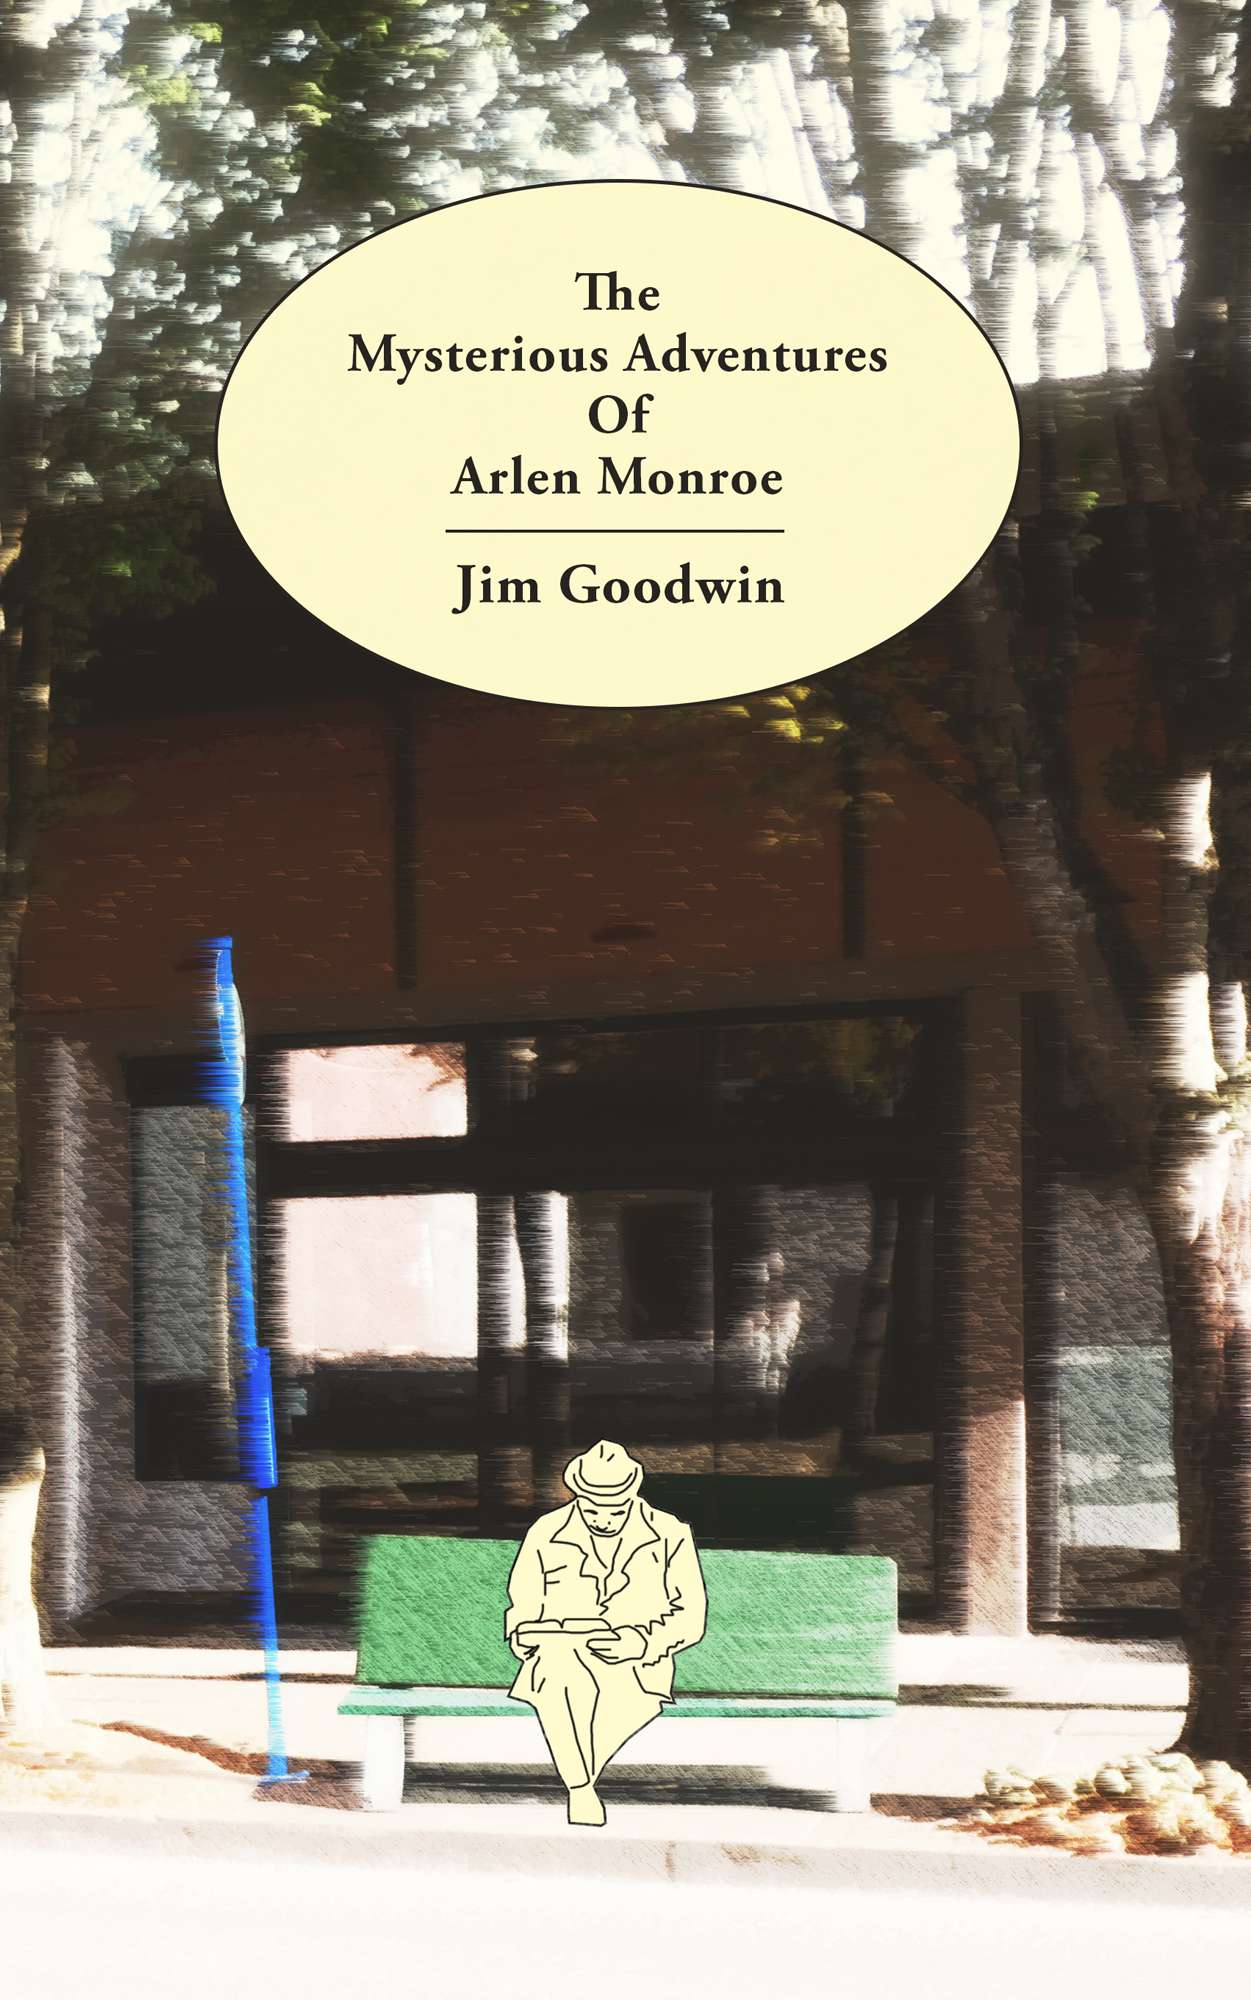 "The cover art for the comedy fictional novel: ""The Mysterious Adventures Of Arlen Monroe"". Written by Author Jim Goodwin. Featuring the main character, perched on a bus stop bench, reading a book."